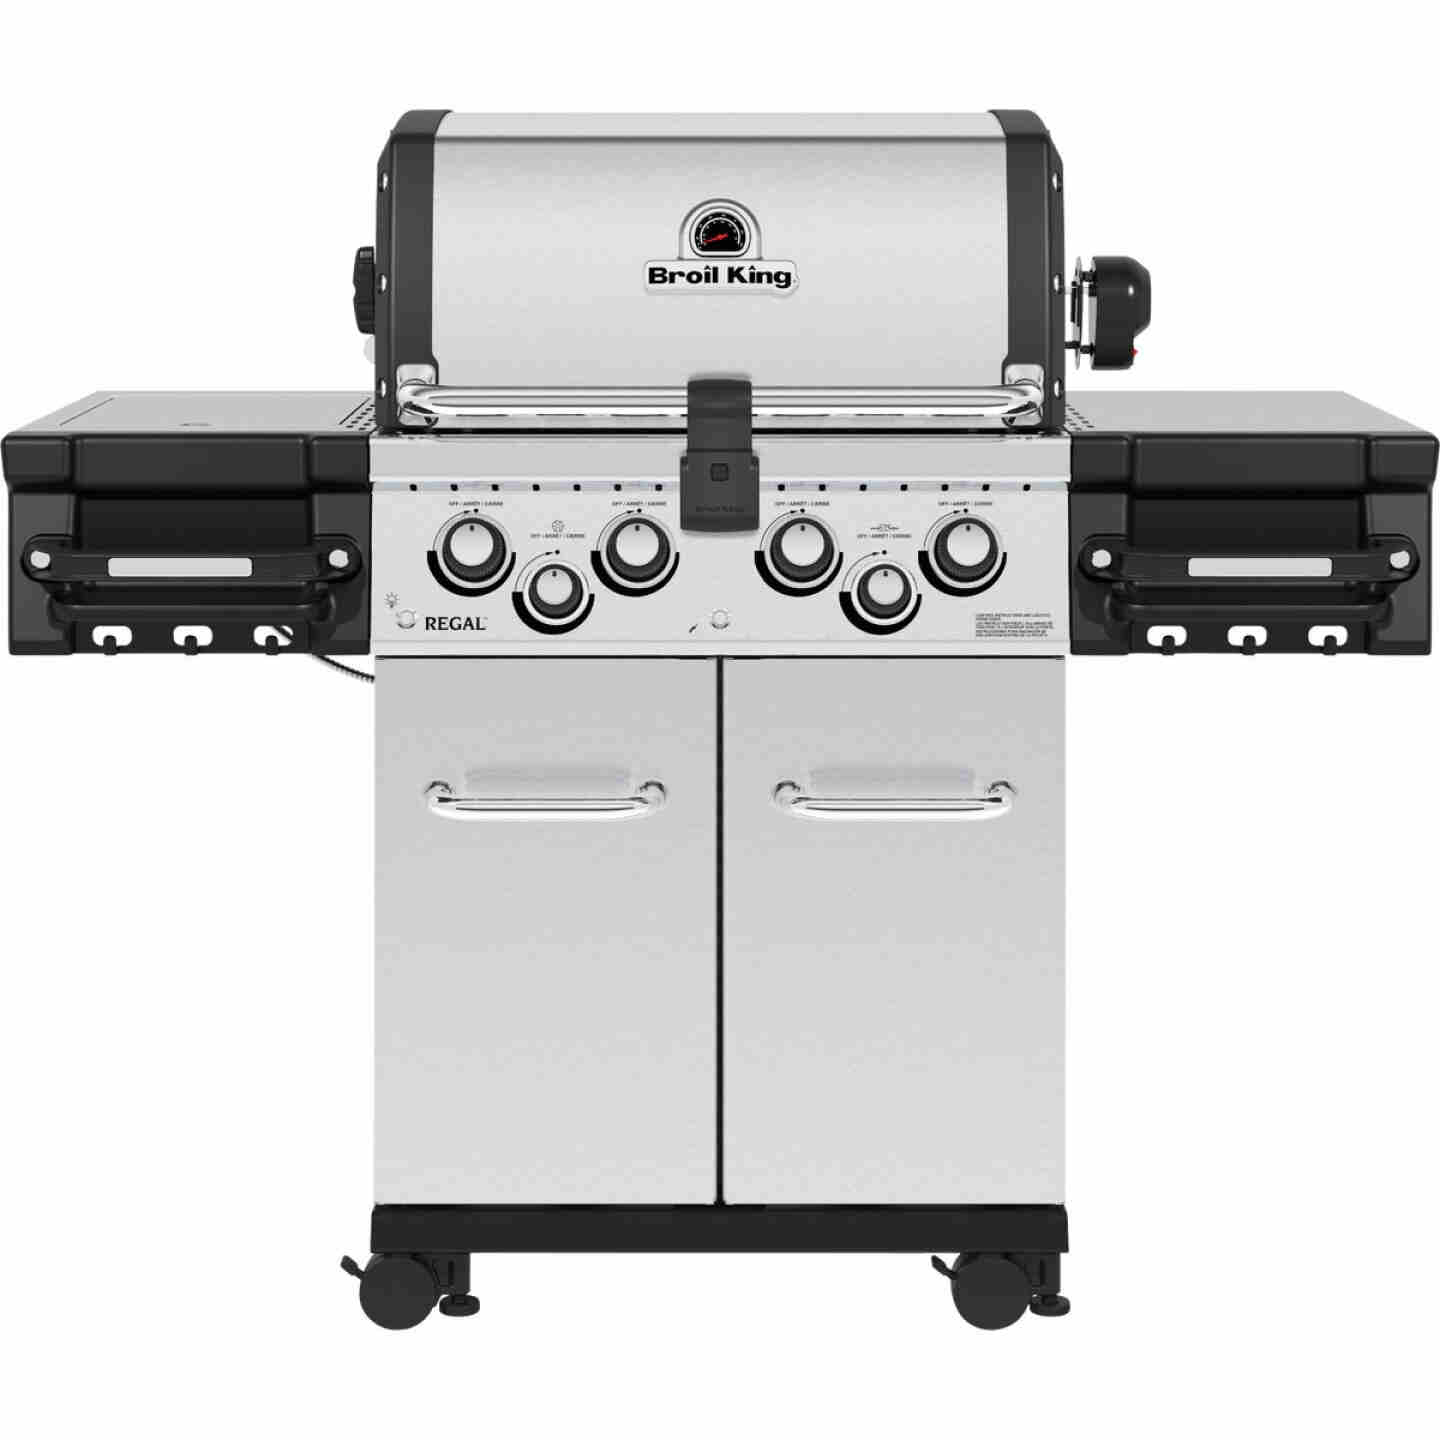 Broil King Regal S 490 Pro 4-Burner Stainless Steel 50,000 BTU LP Gas Grill Image 1